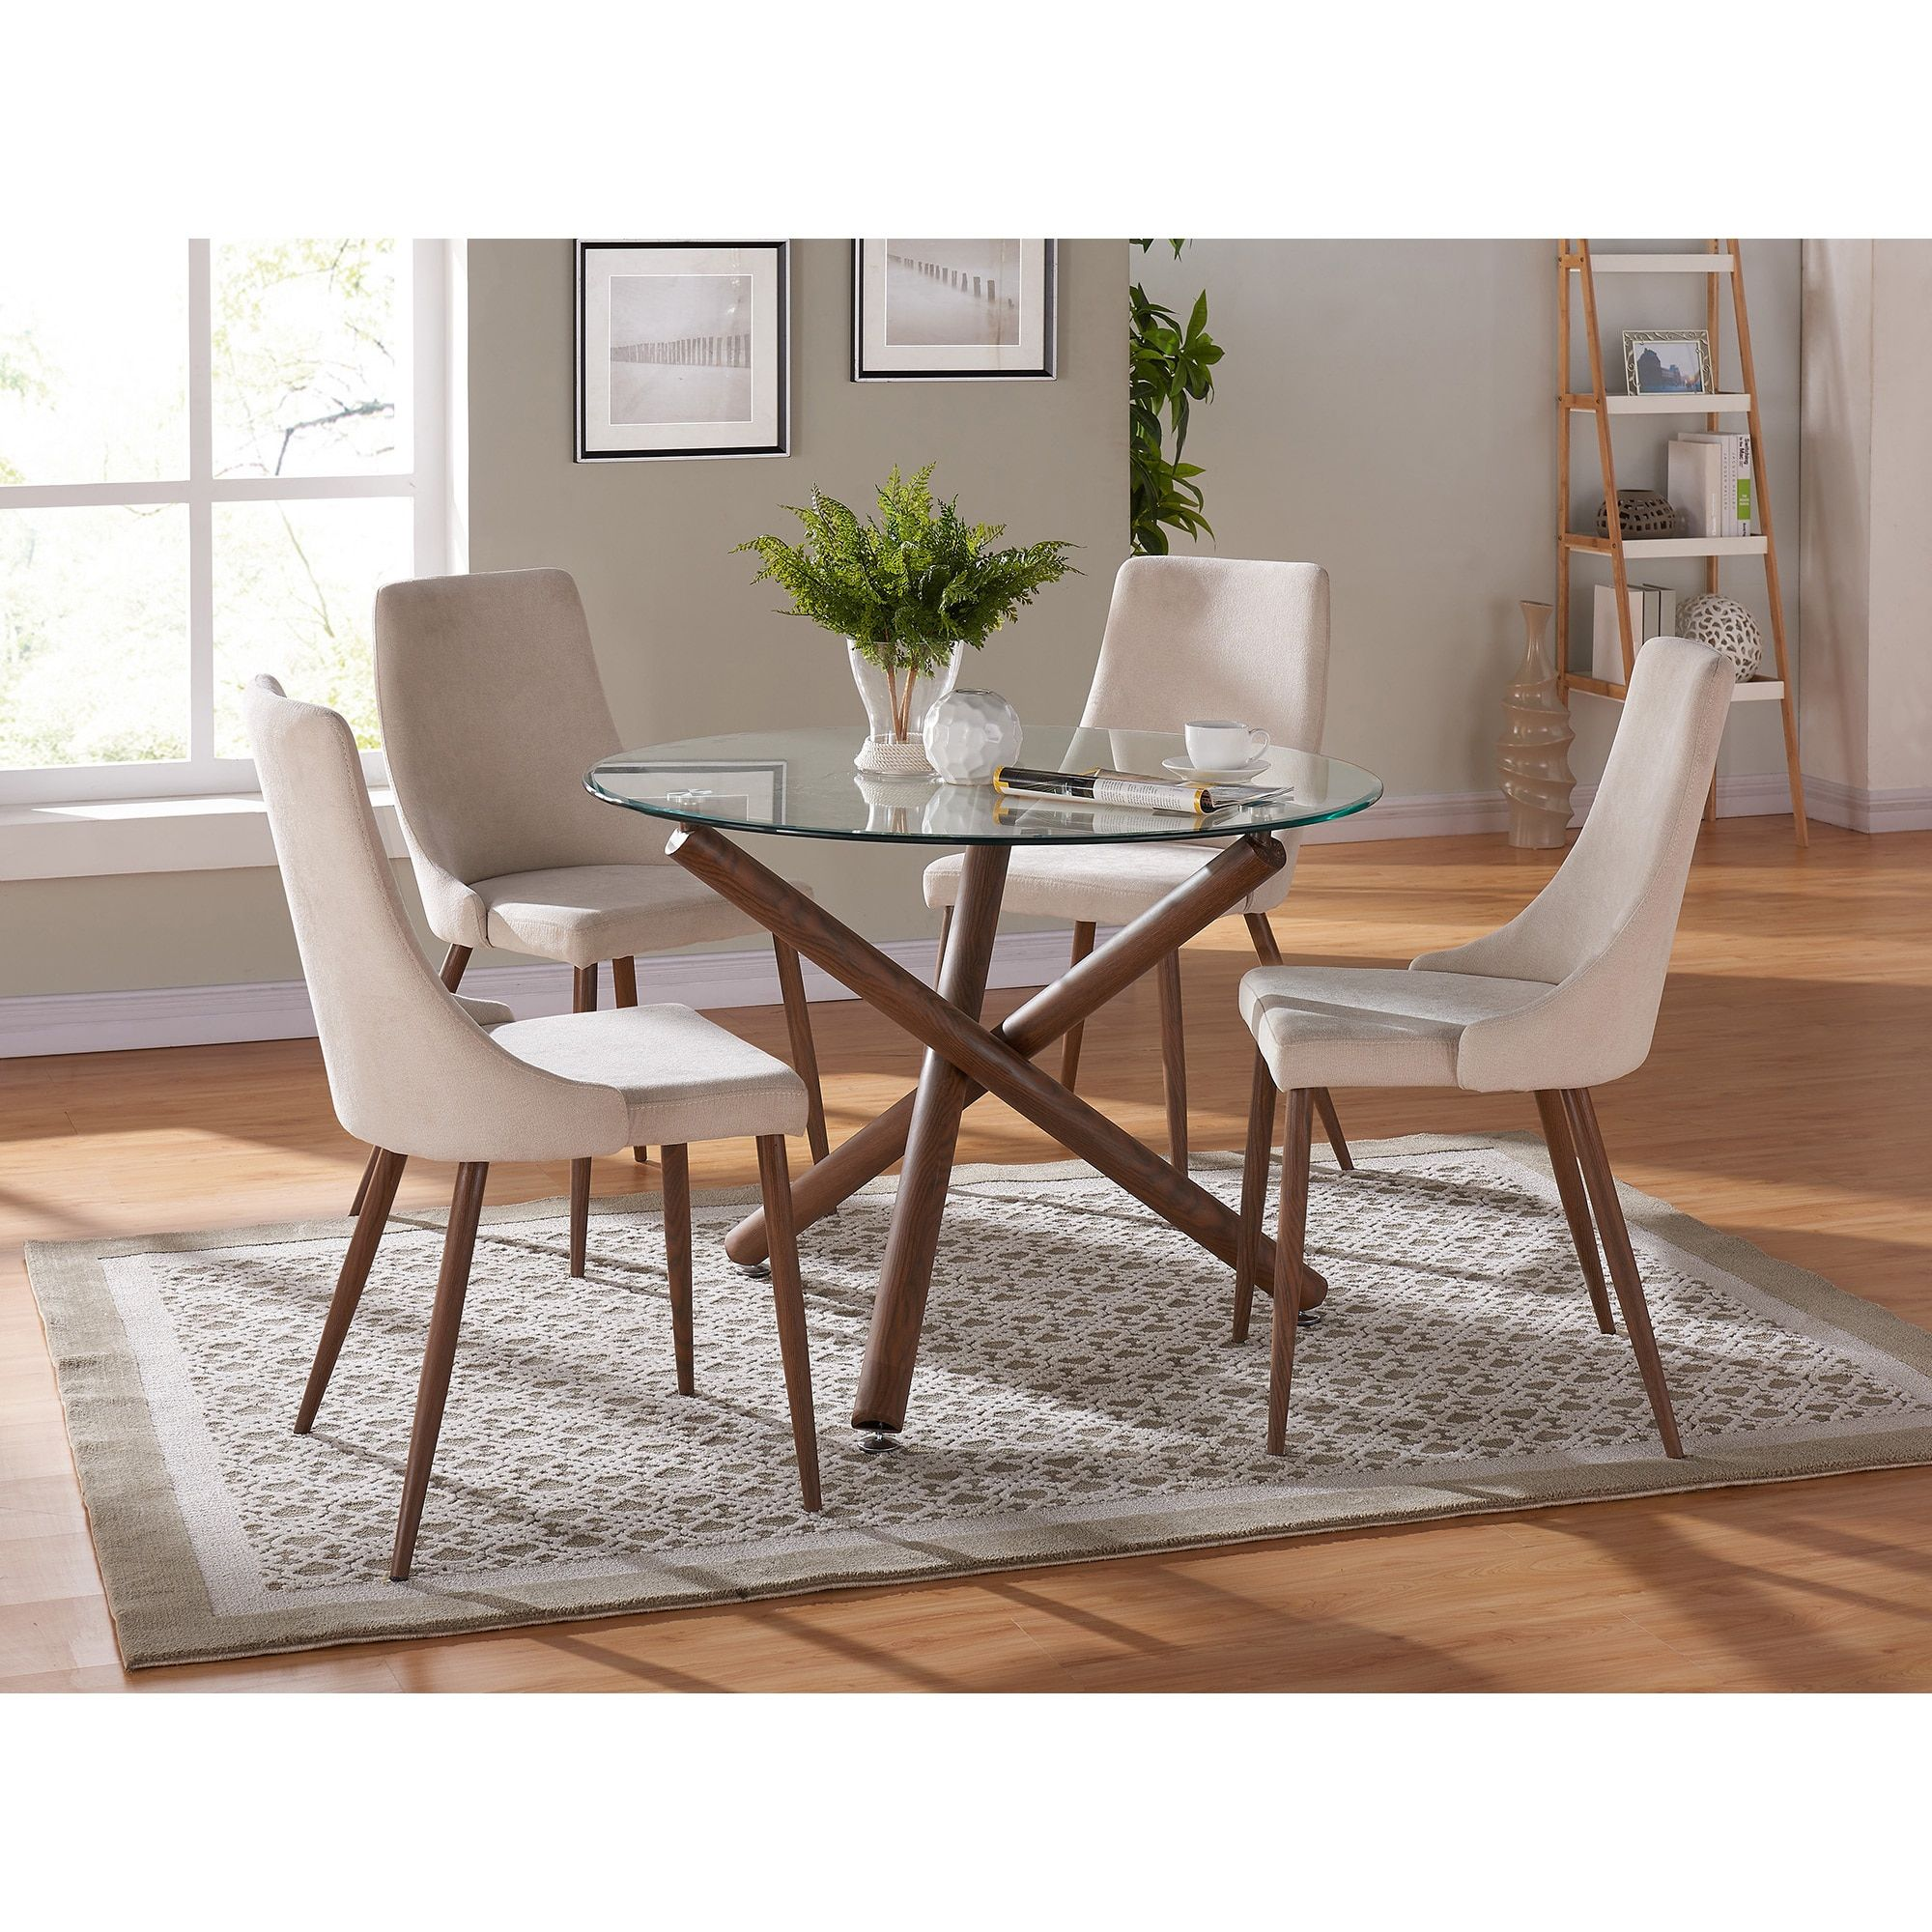 Dining chairs fabric dining room chairs make mealtimes more inviting with comfortable and attractive dining room and kitchen chairs